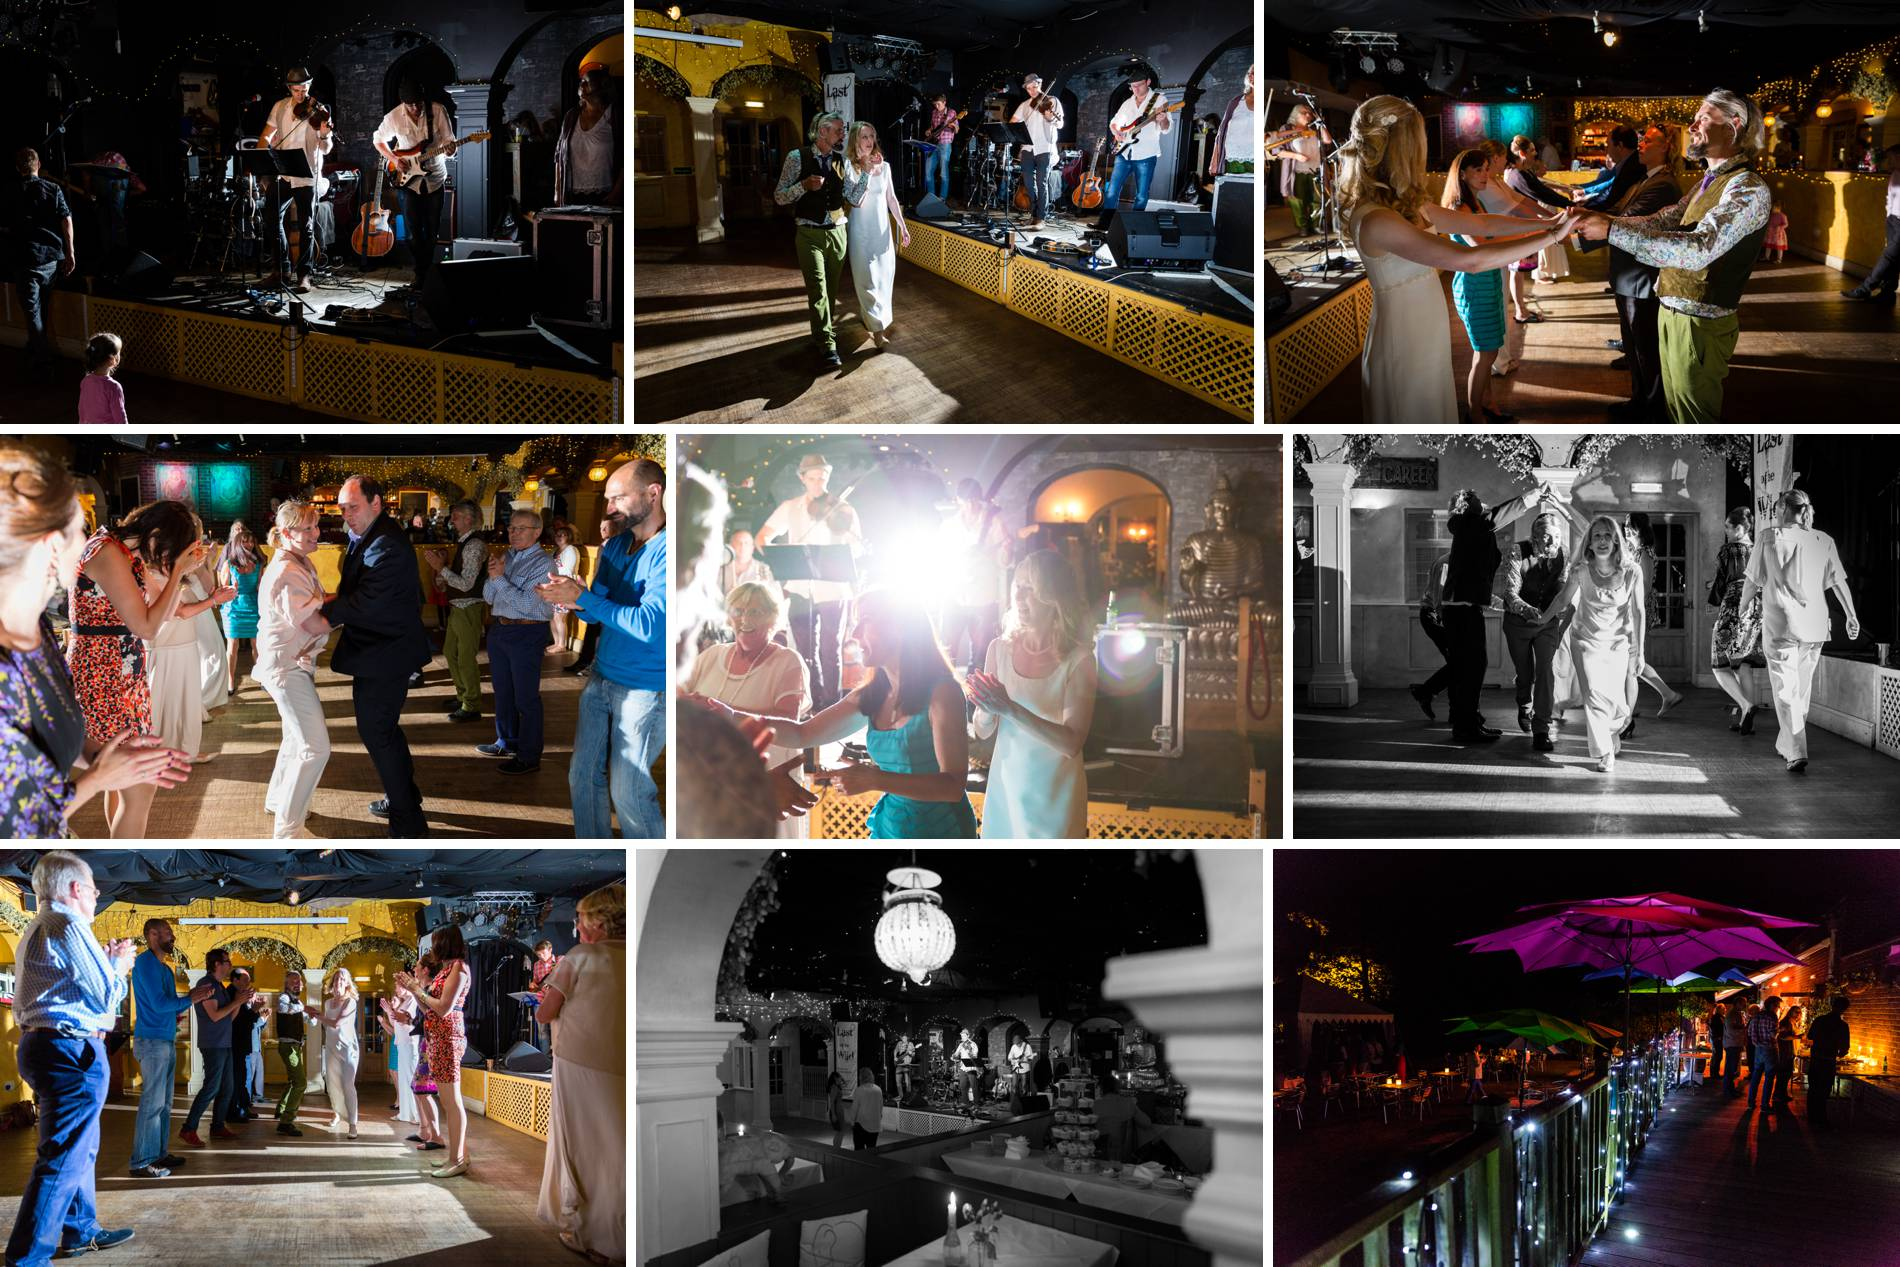 Evening wedding photos of a ceilidh in sussex